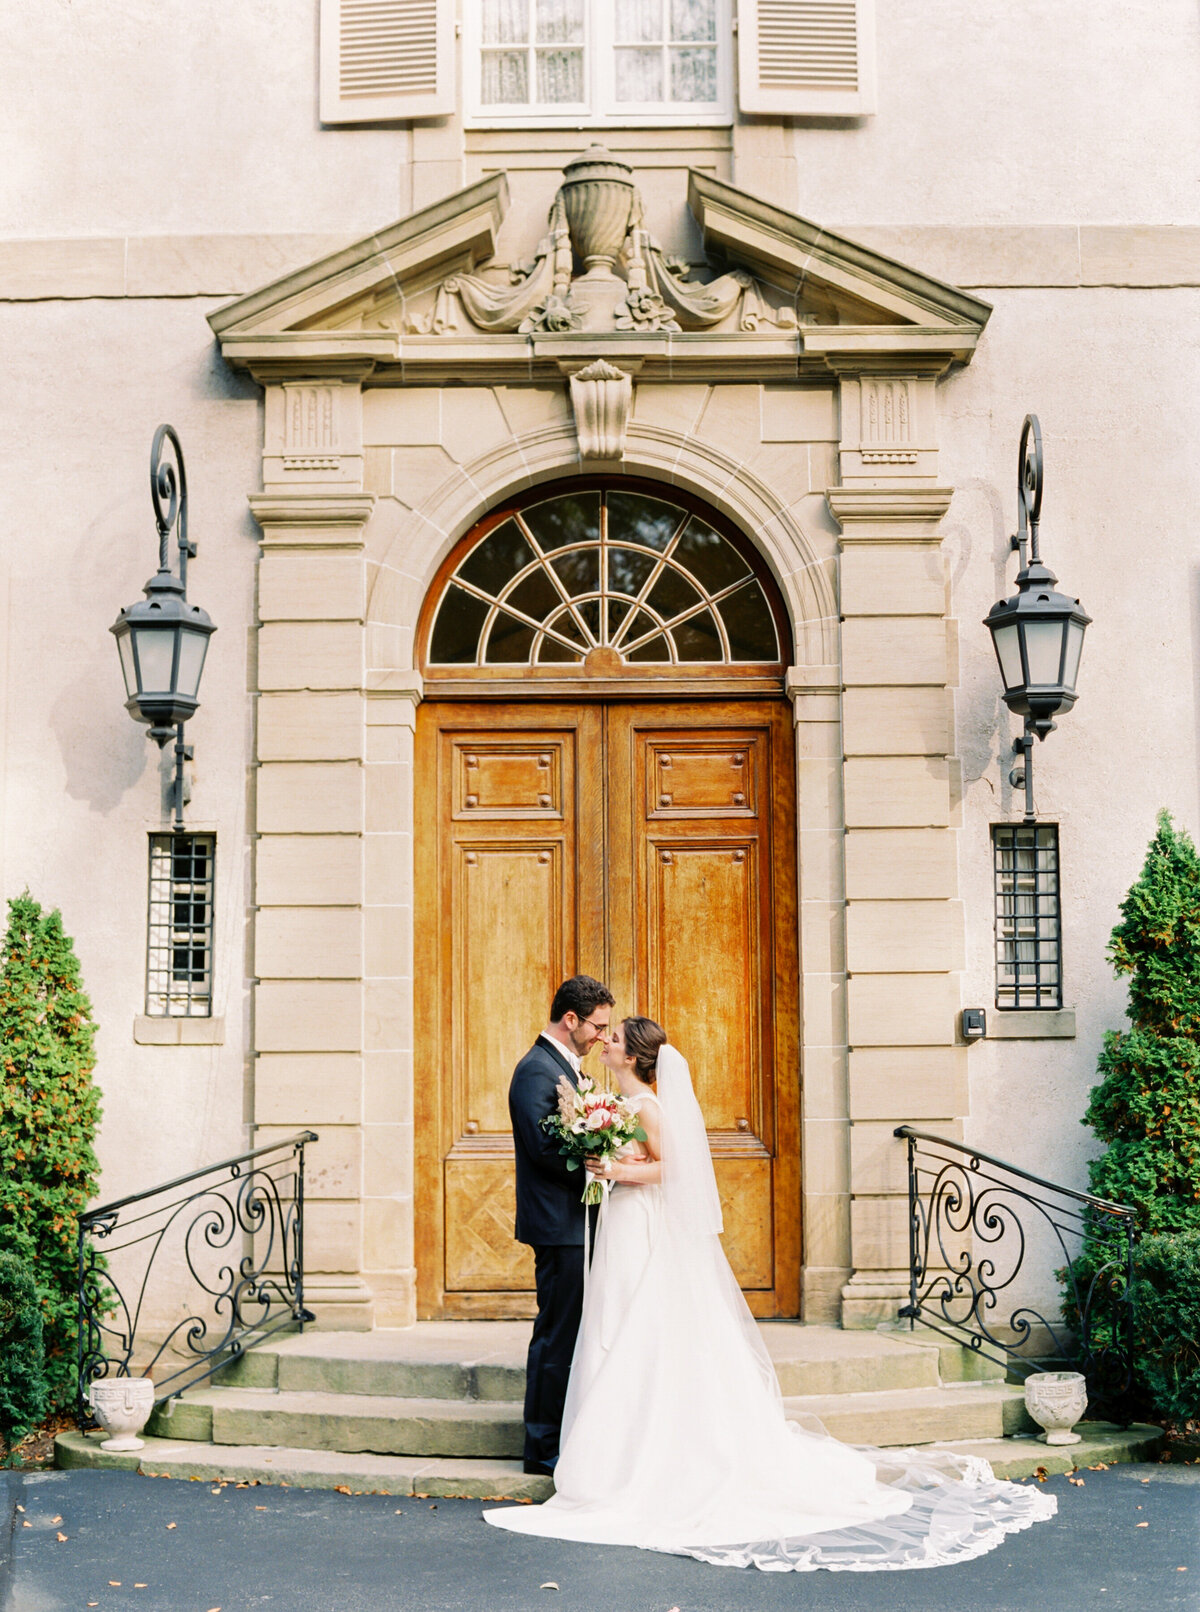 Tiffaney Childs-Newport Wedding Photographer-Lori + Christopher-Glenmanor House Wedding-25